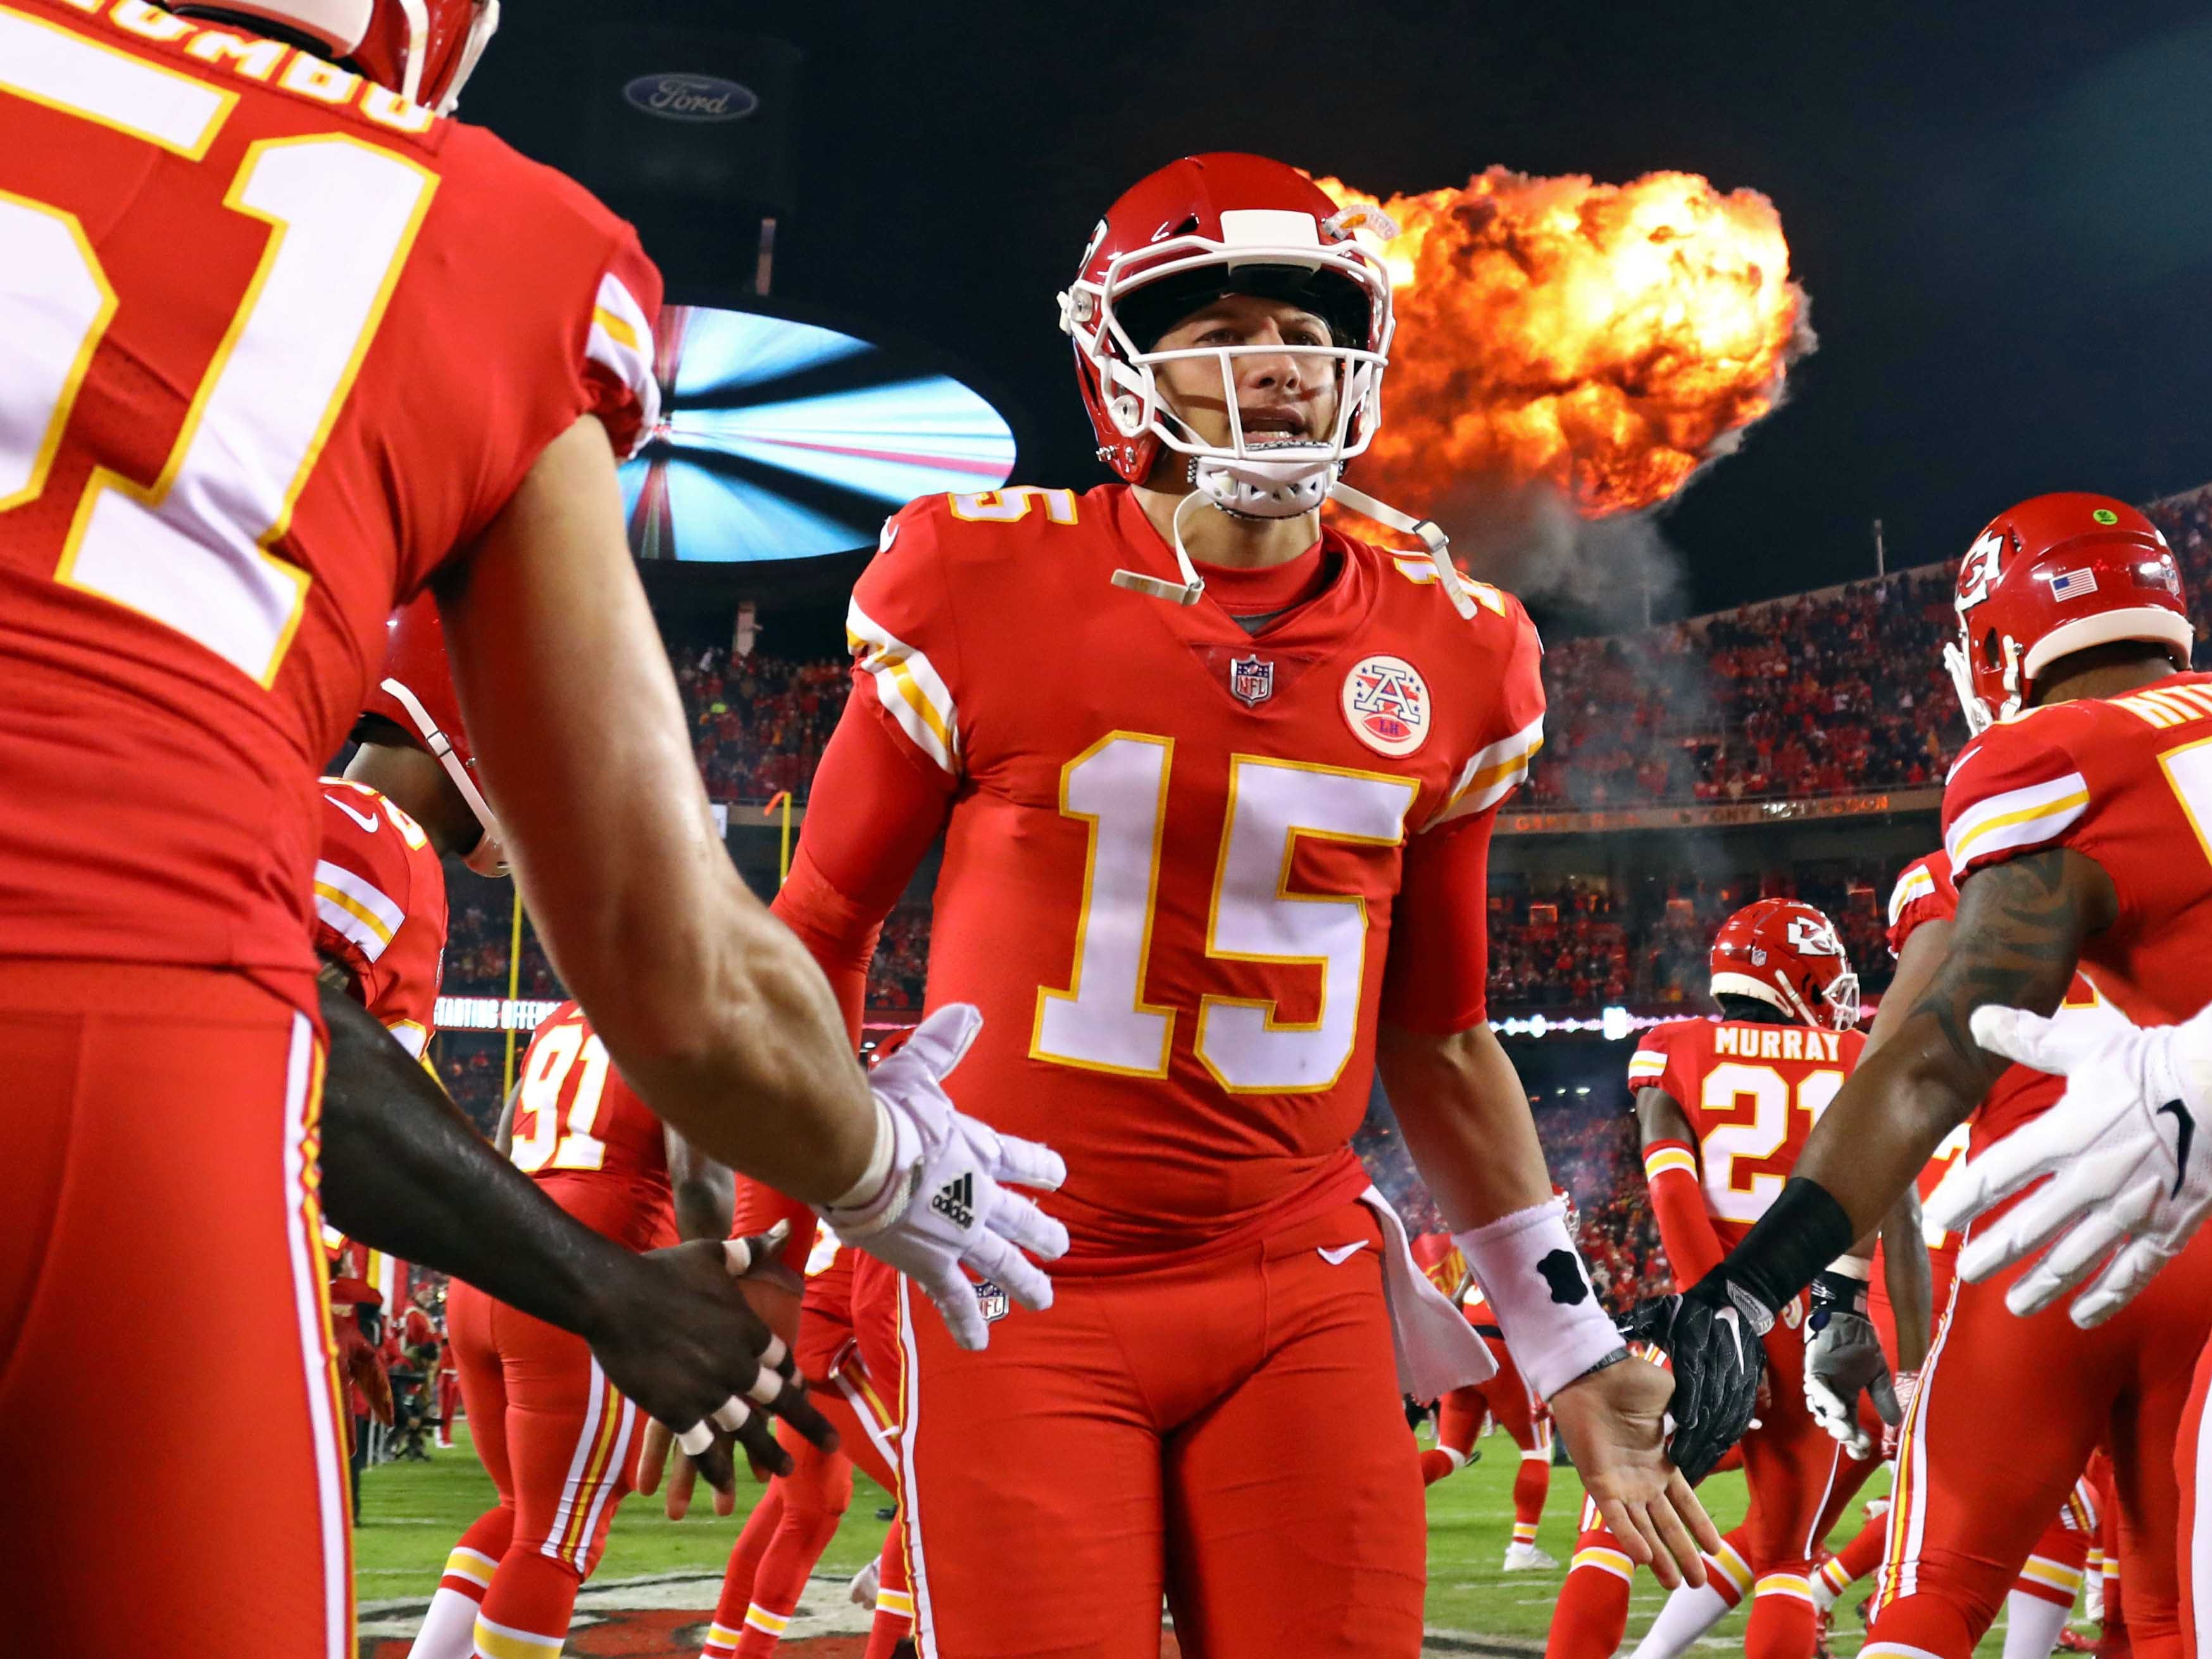 Kansas City Chiefs quarterback Patrick Mahomes takes the field before the game against the Los Angeles Chargers at Arrowhead Stadium.